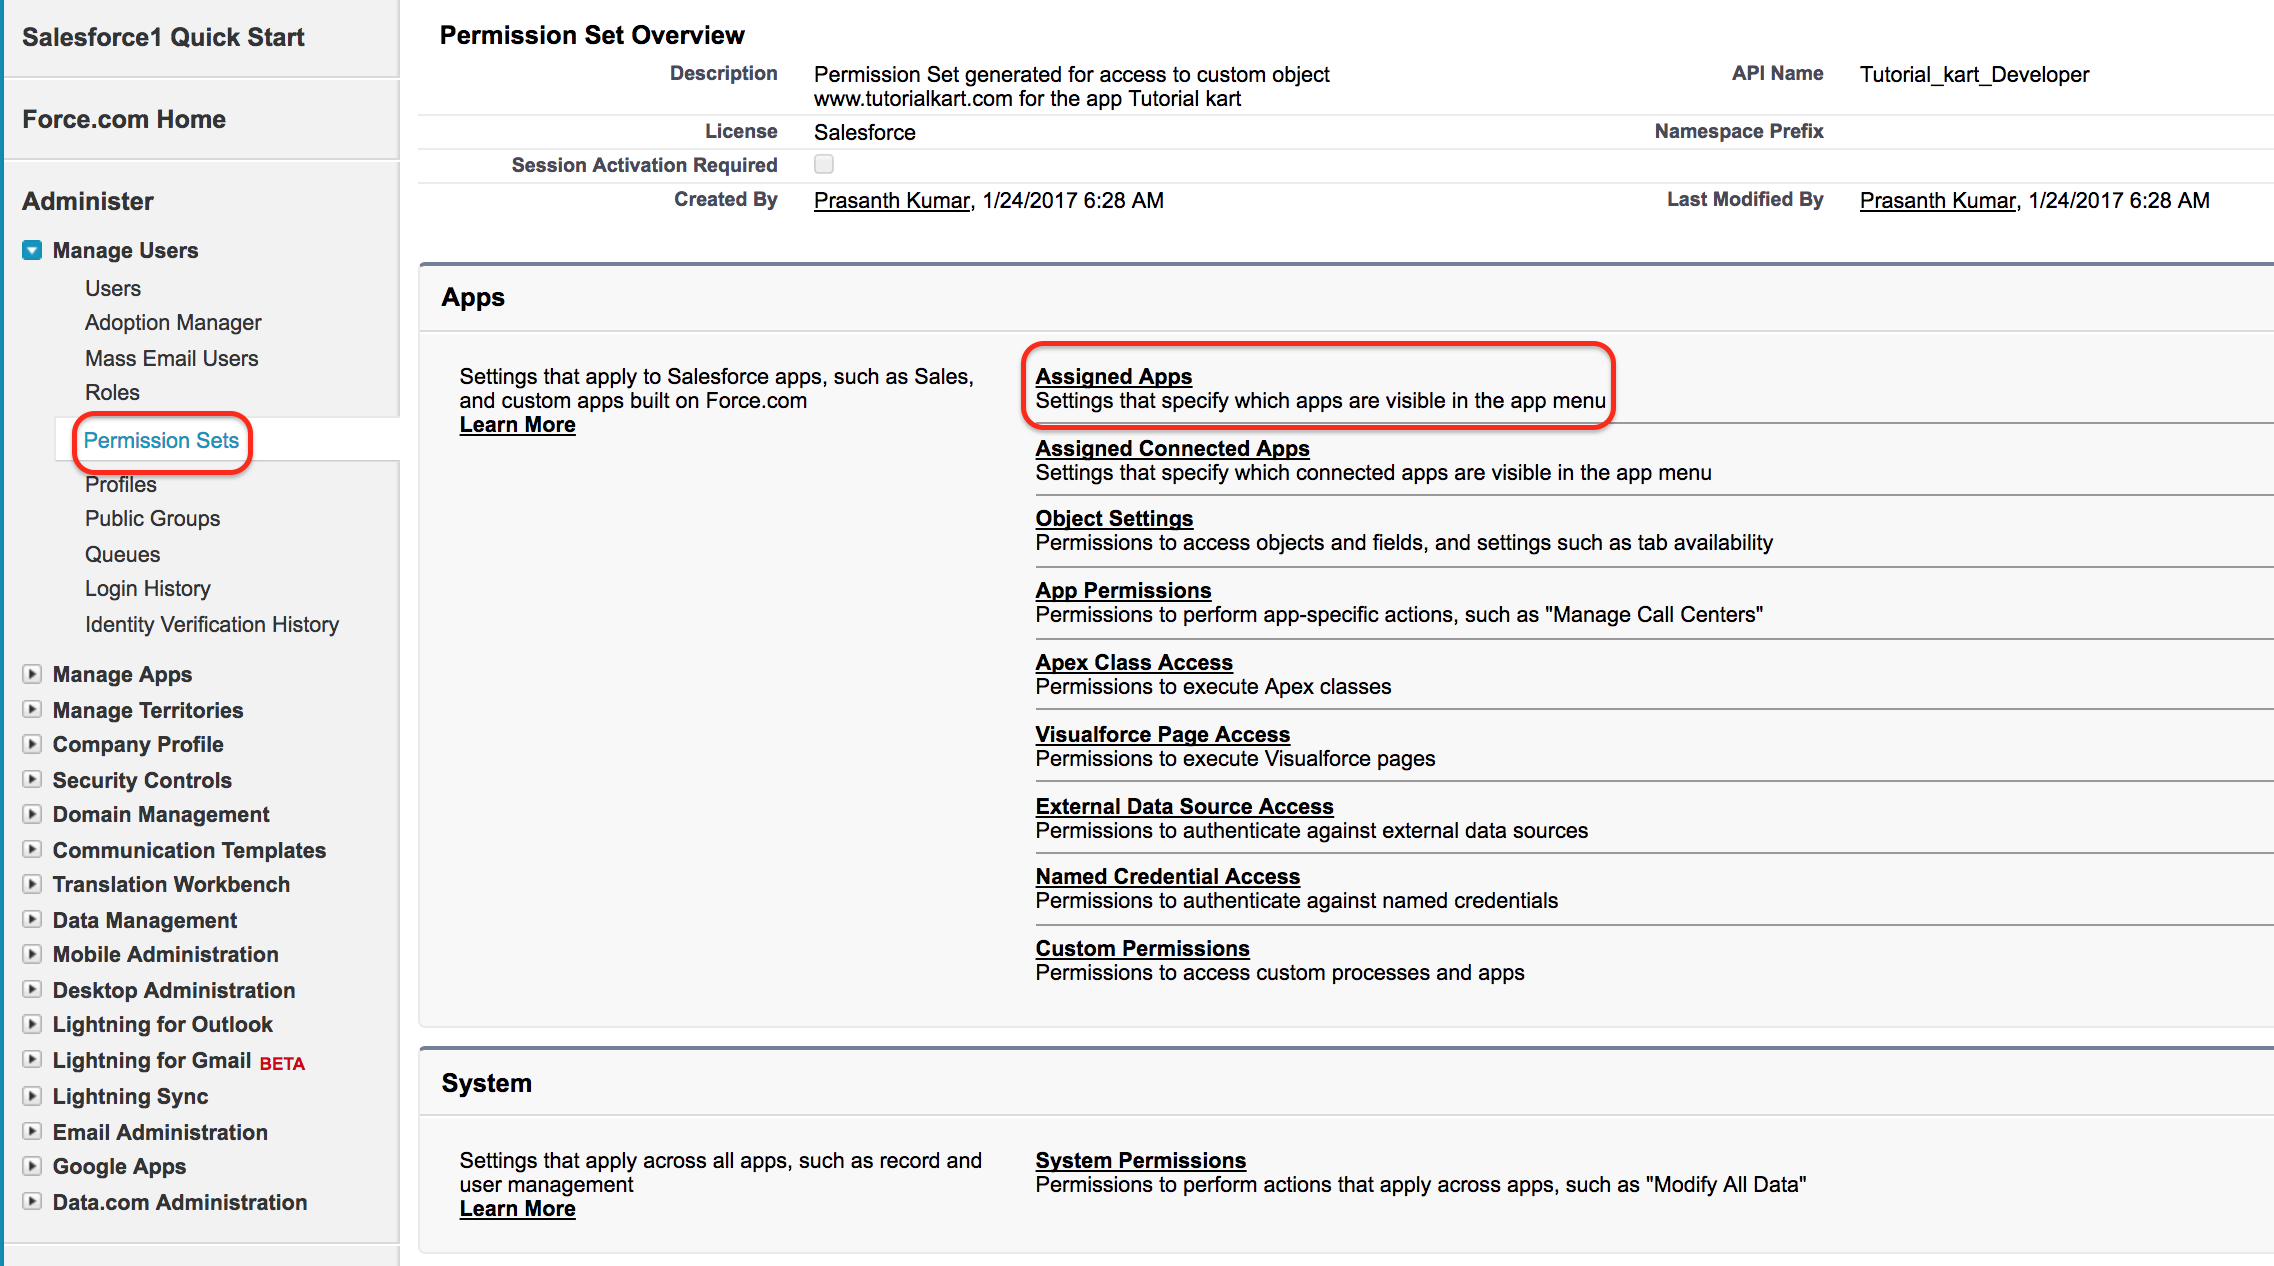 Difference between Profiles and Permission Sets in Salesforce